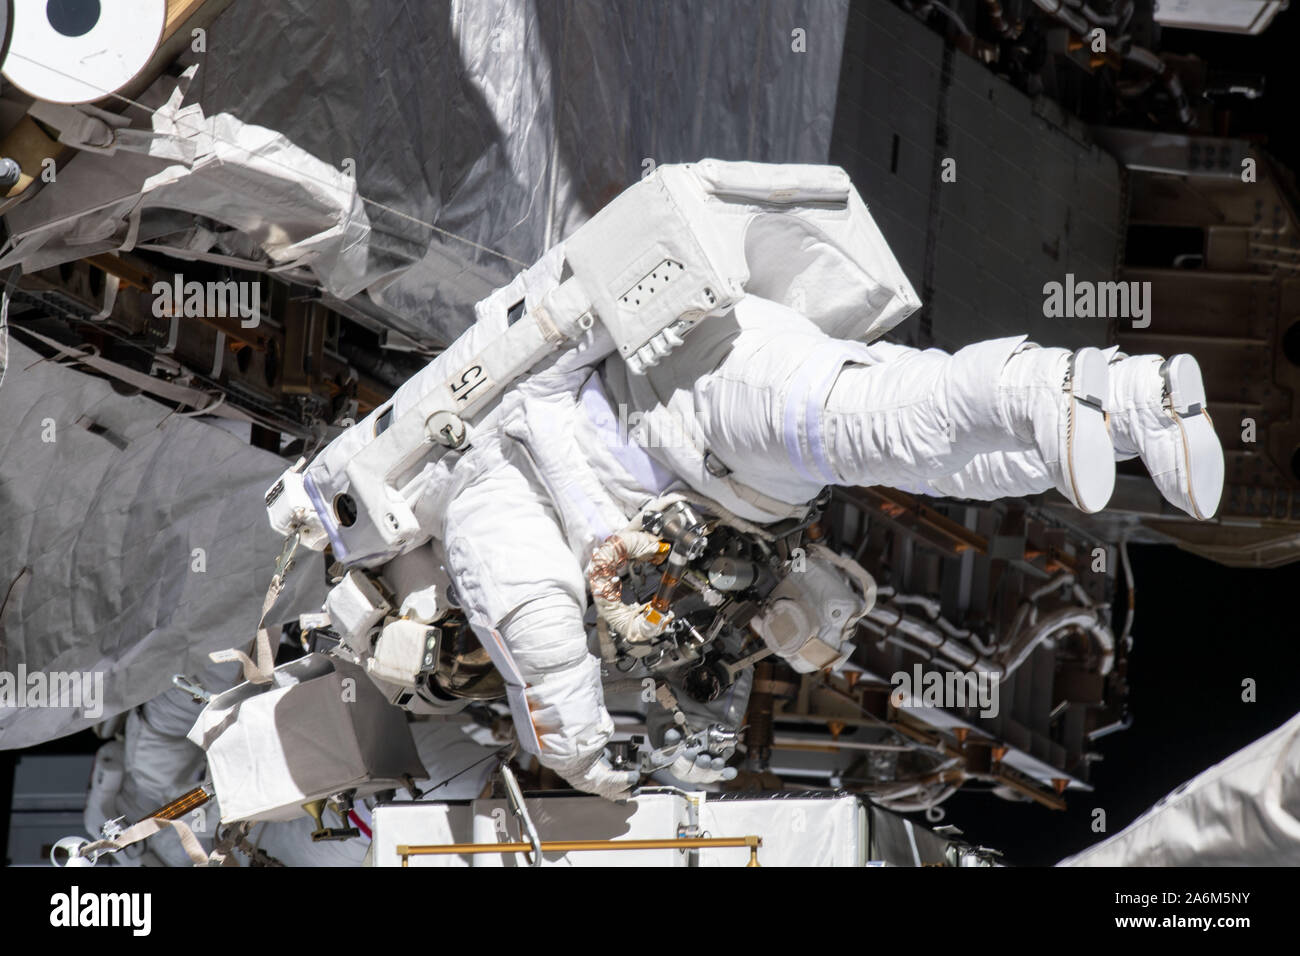 NASA astronaut Christina Koch works while tethered near the Port 6 truss segment of the International Space Station to replace older hydrogen-nickel batteries with newer, more powerful lithium-ion batteries, during the October 11, 2019, spacewalk. Stock Photo